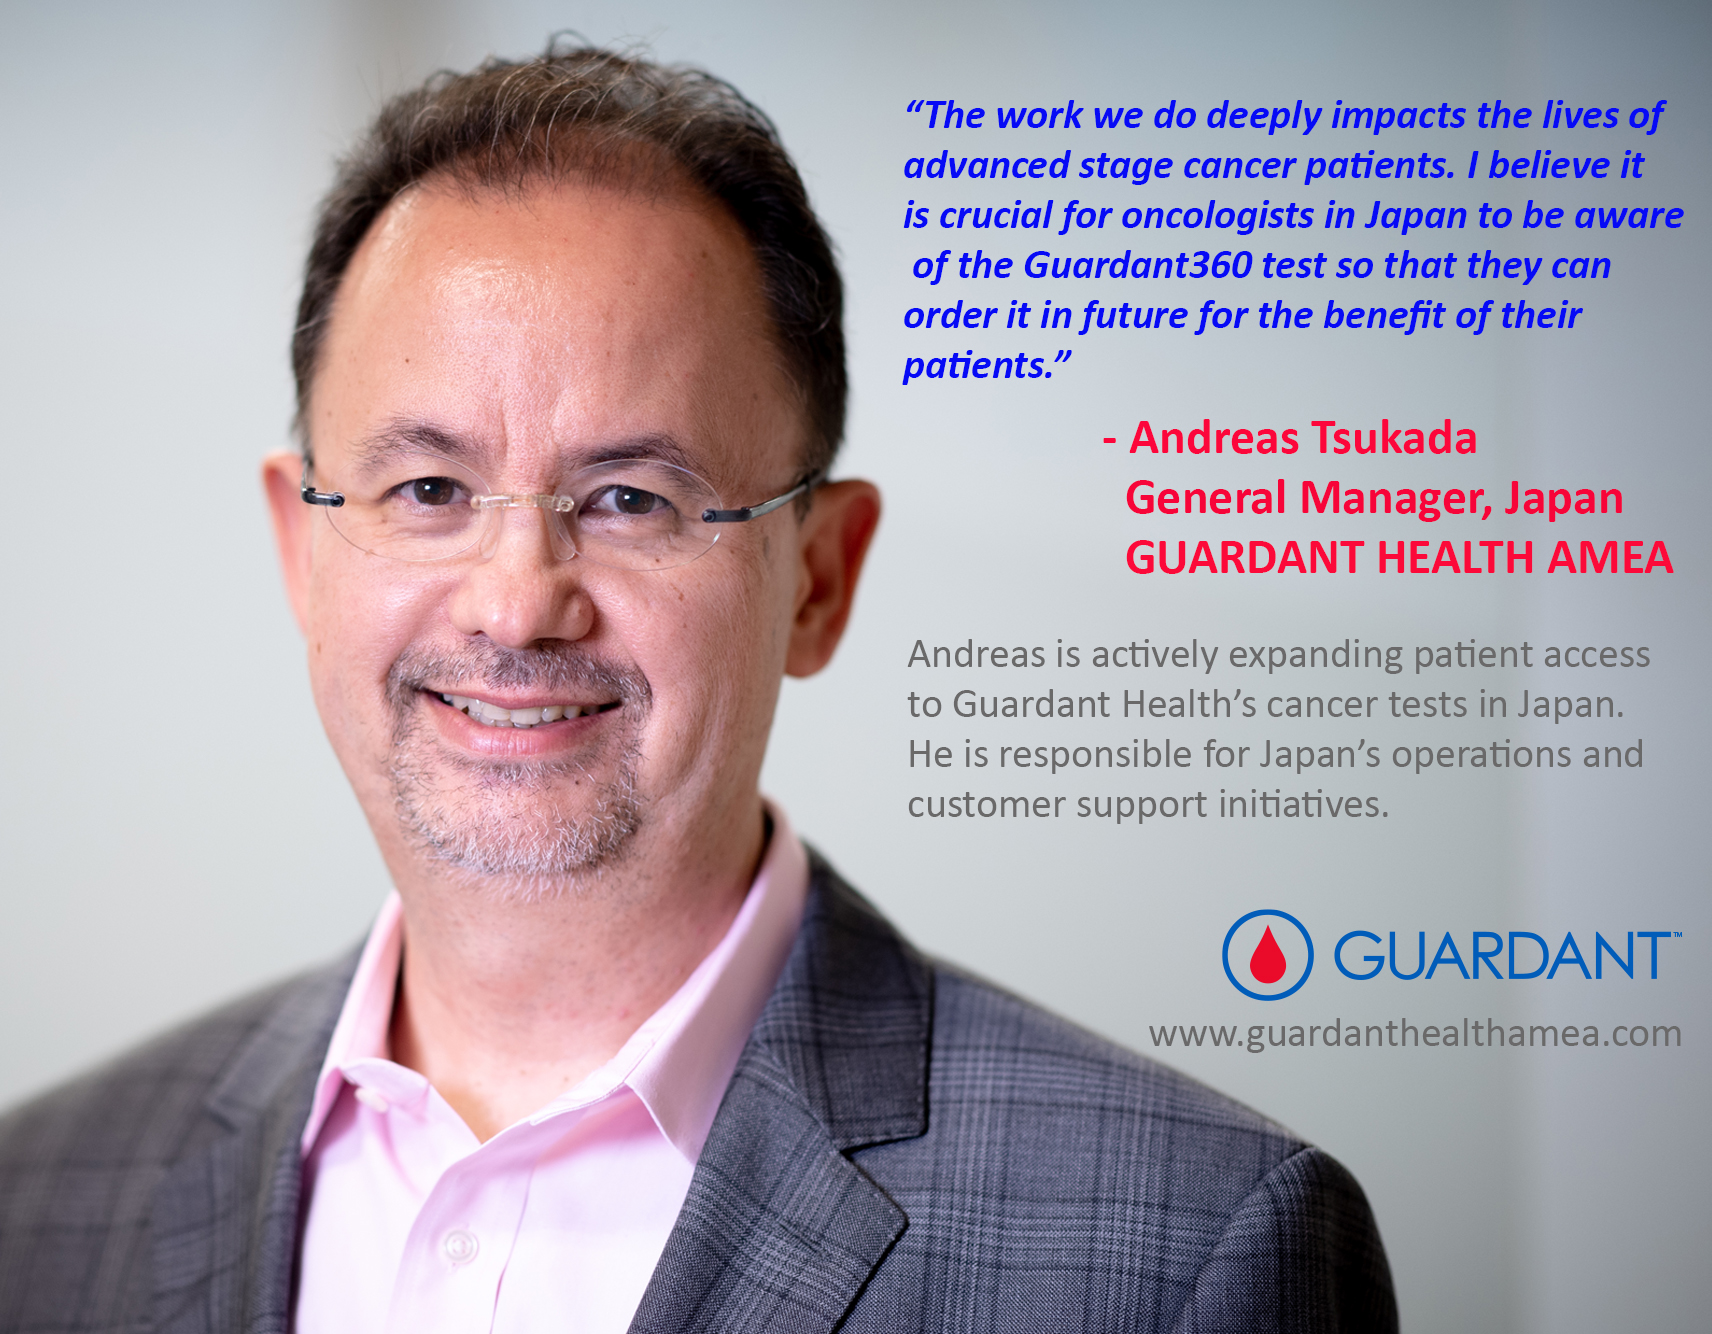 Join our team at guardanthealthamea.com